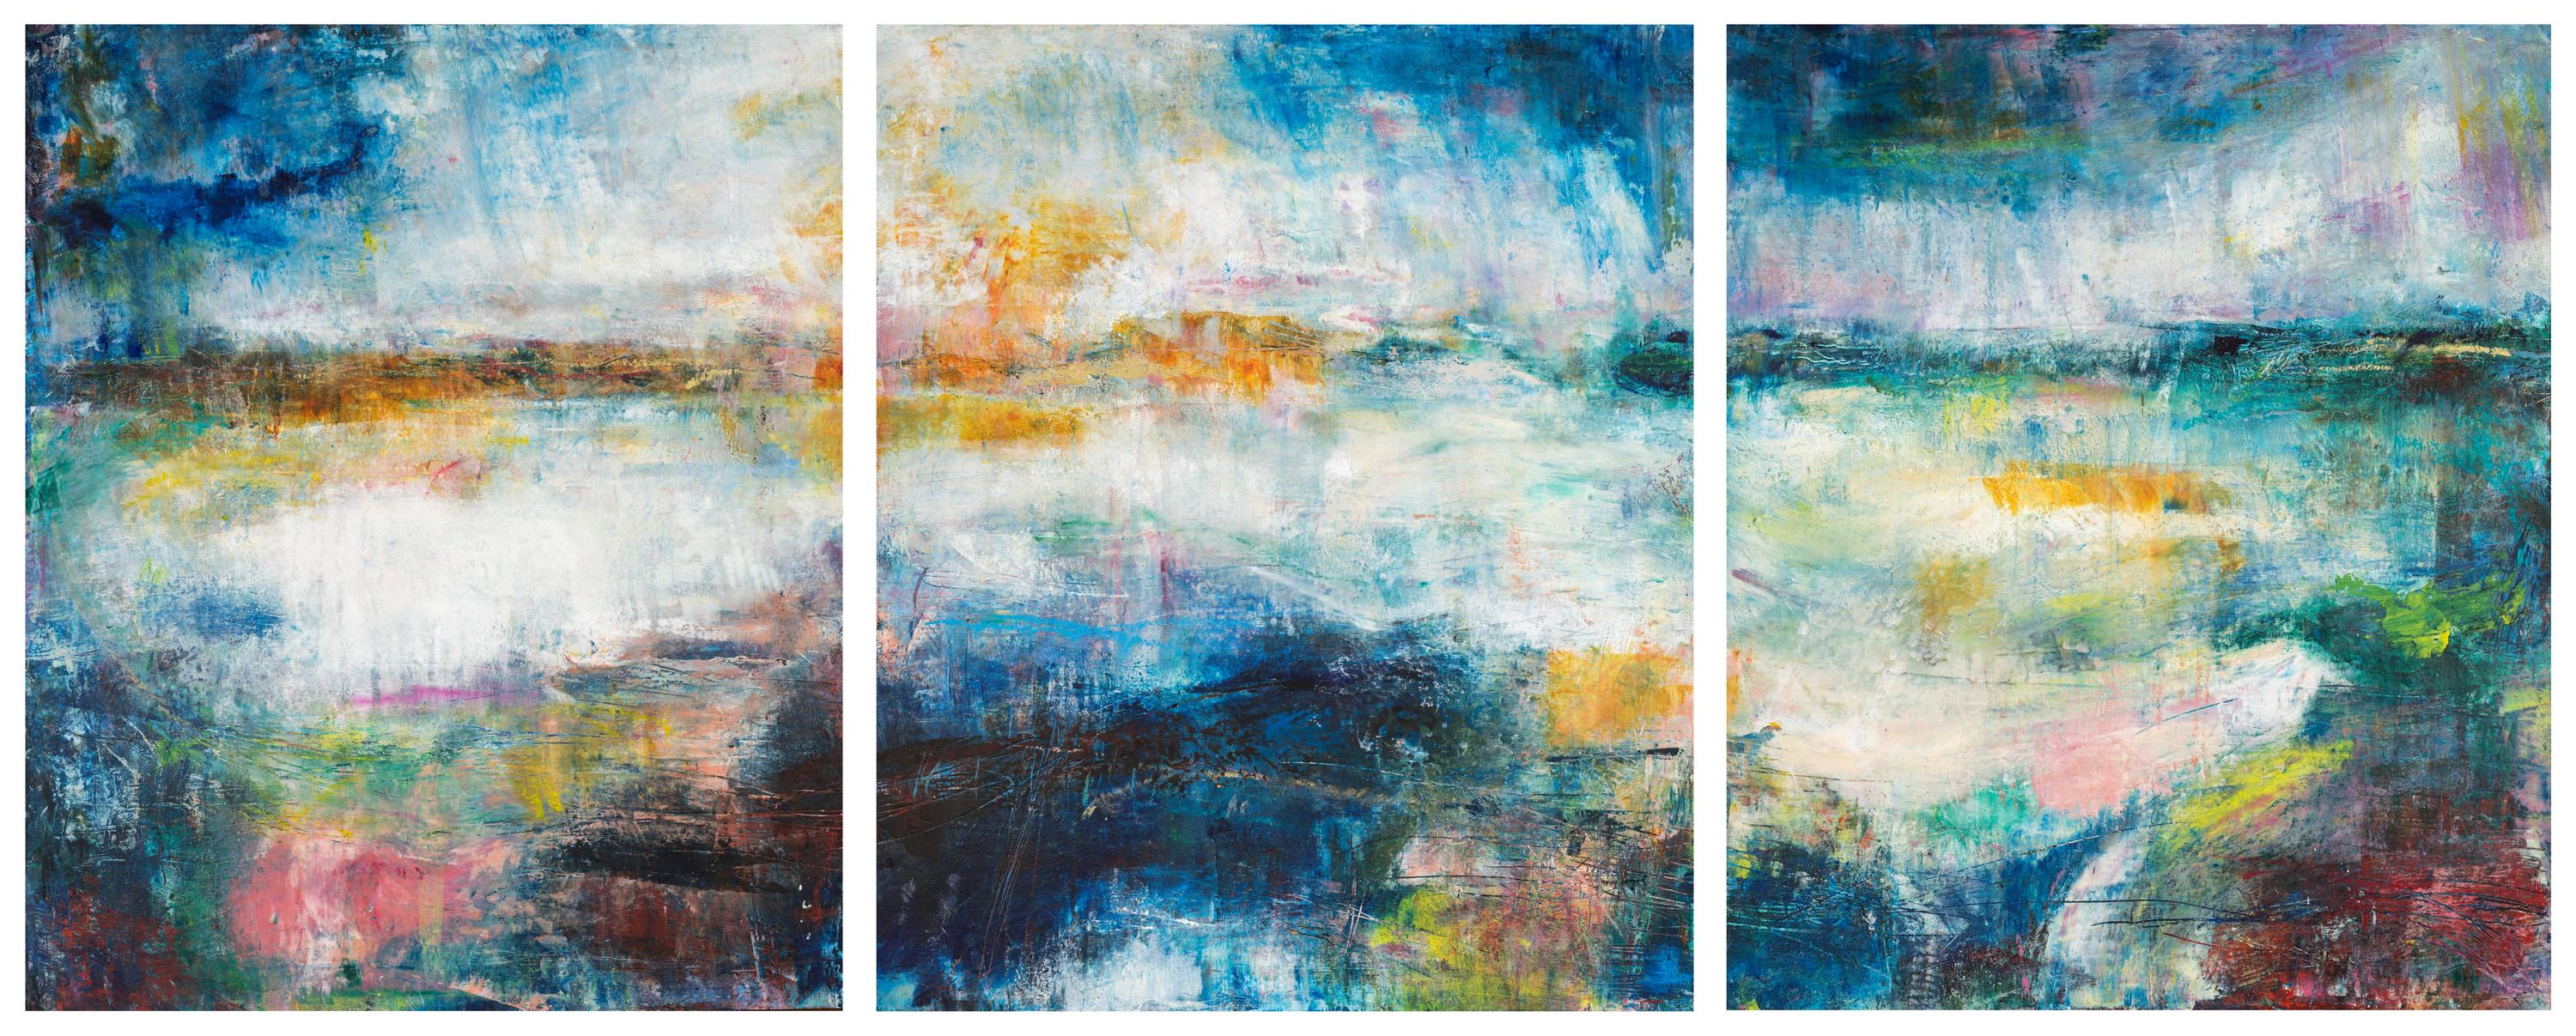 Containers triptych eadaoin glynn 2019 oil oil bar pigment cold wax on cradled panel 60x150cm hires tveiq2